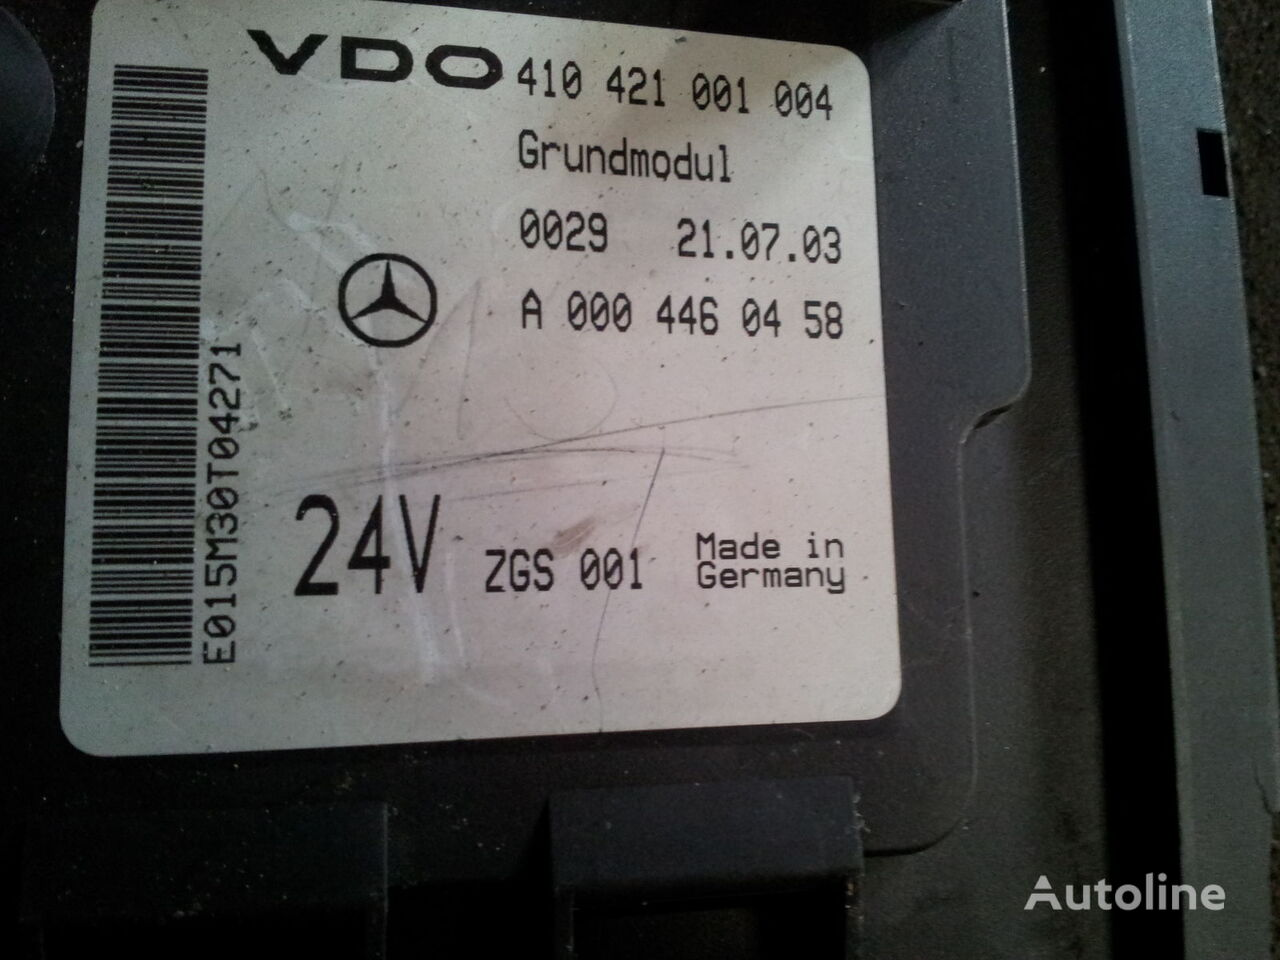 Control Unit Mercedes-Benz Used Part No.: Mercedes Benz Actros MP2, MP3 GM  unit, Grundmodul, Fuse box, central electric plate, EURO3, EURO5,  0004467358, 0004461958, 0004467558, 0004460058, 0004460458, 0004460758,  0004461058, 0004461458, 00... (179968 ...Plant & Equipment